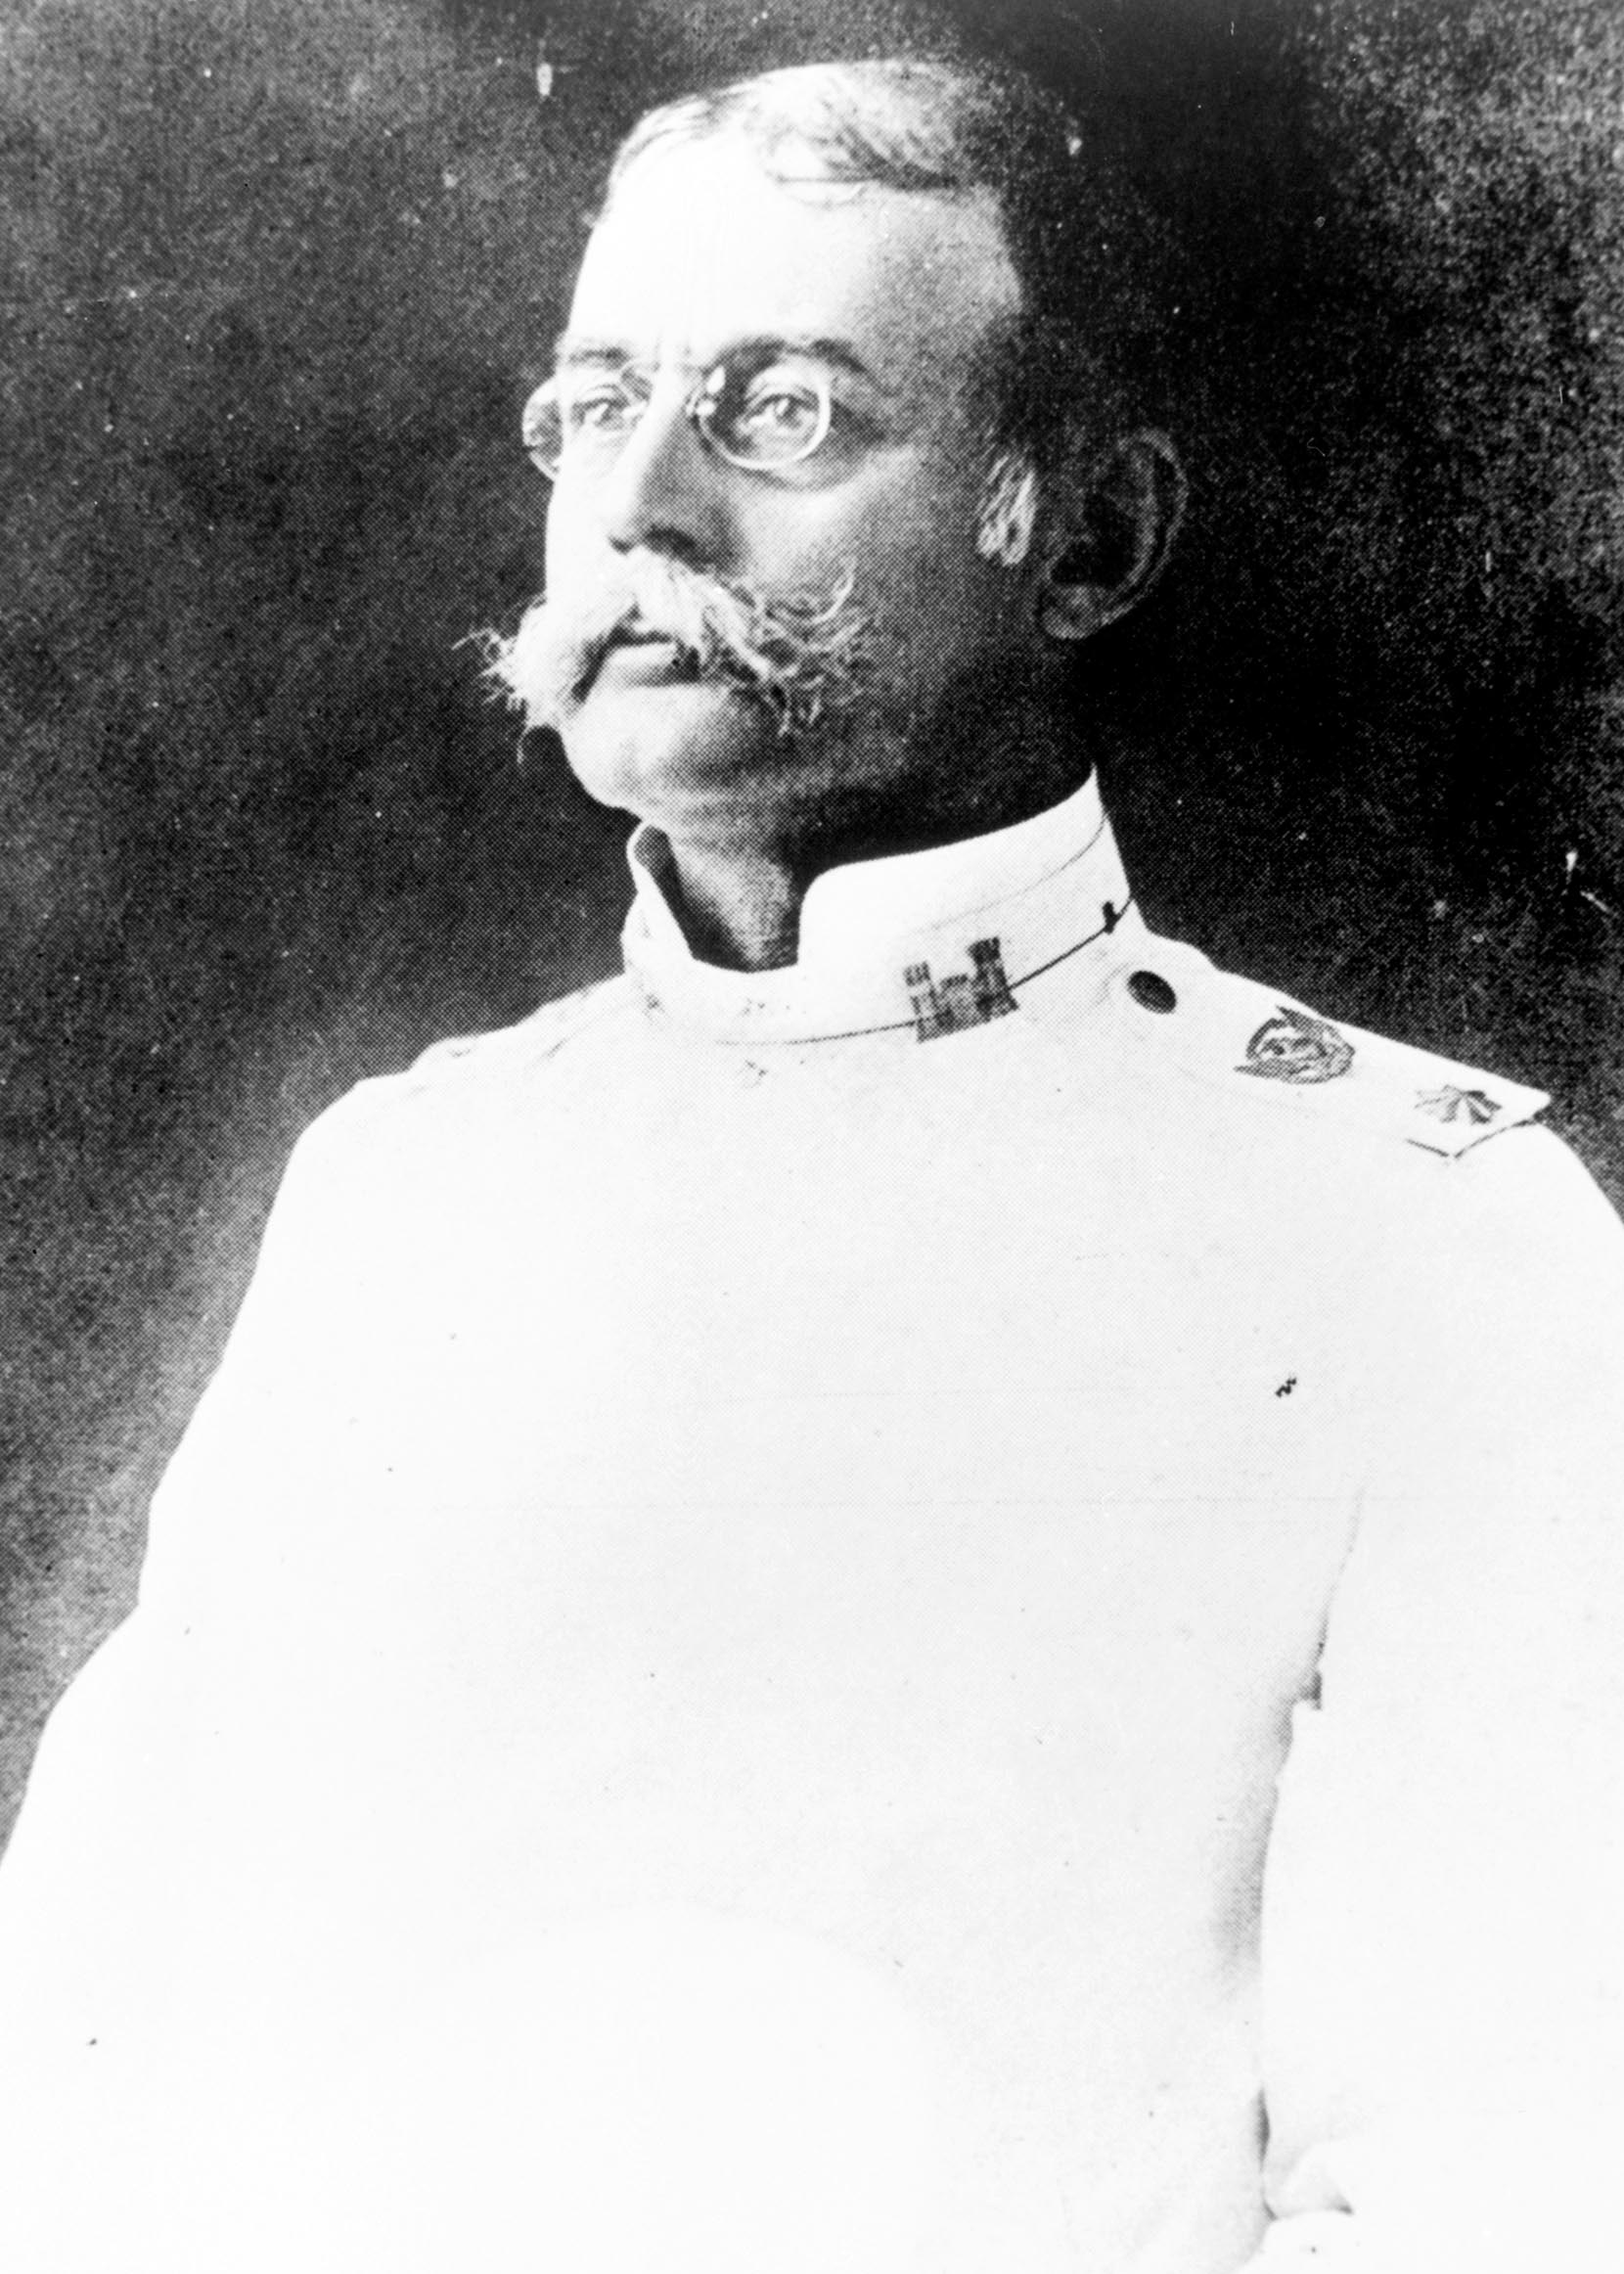 Lt. Col. Clinton B. Sears